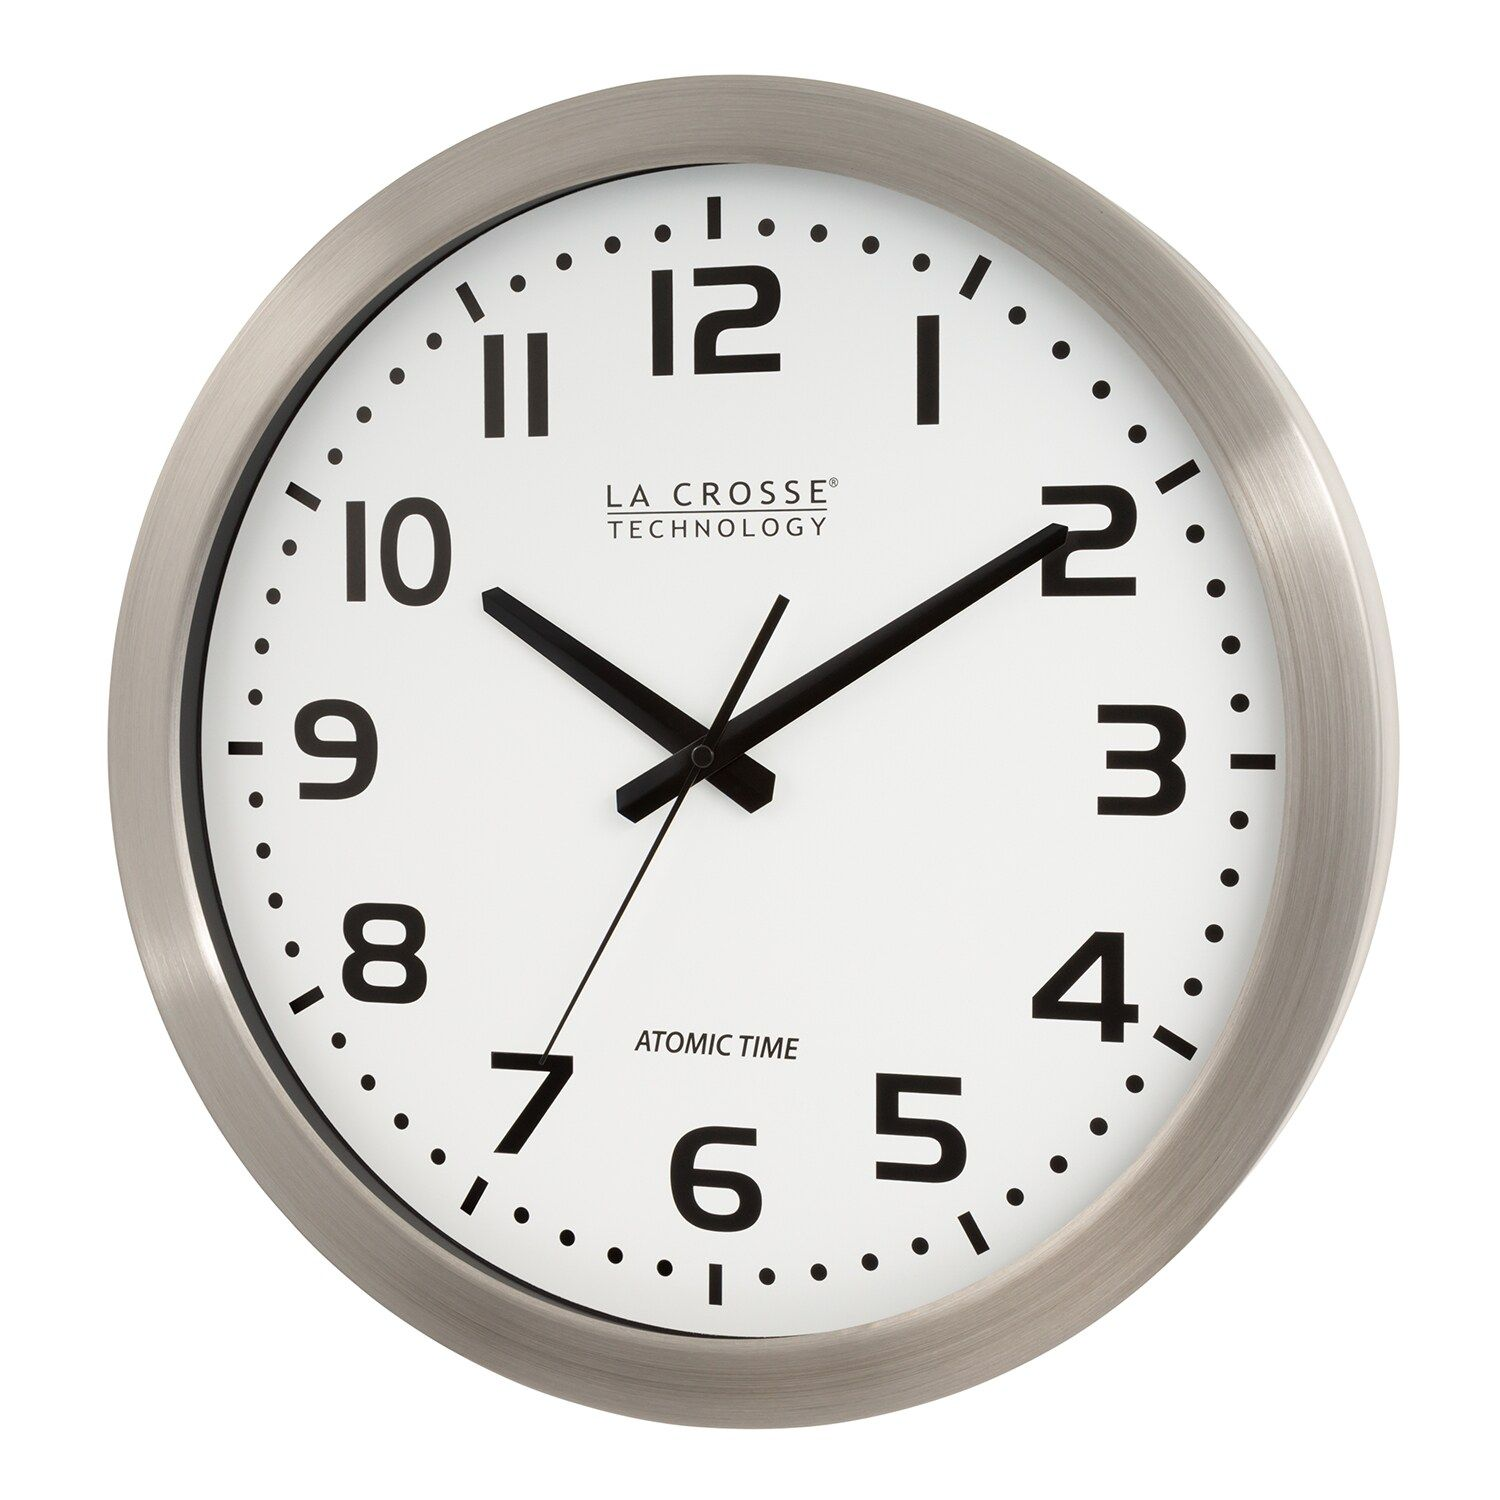 La Crosse Technology 16 Inch Stainless Steel Atomic Clock Affiliate Technology La Crosse Inch In 2020 Metal Wall Clock Atomic Wall Clock Wall Clock